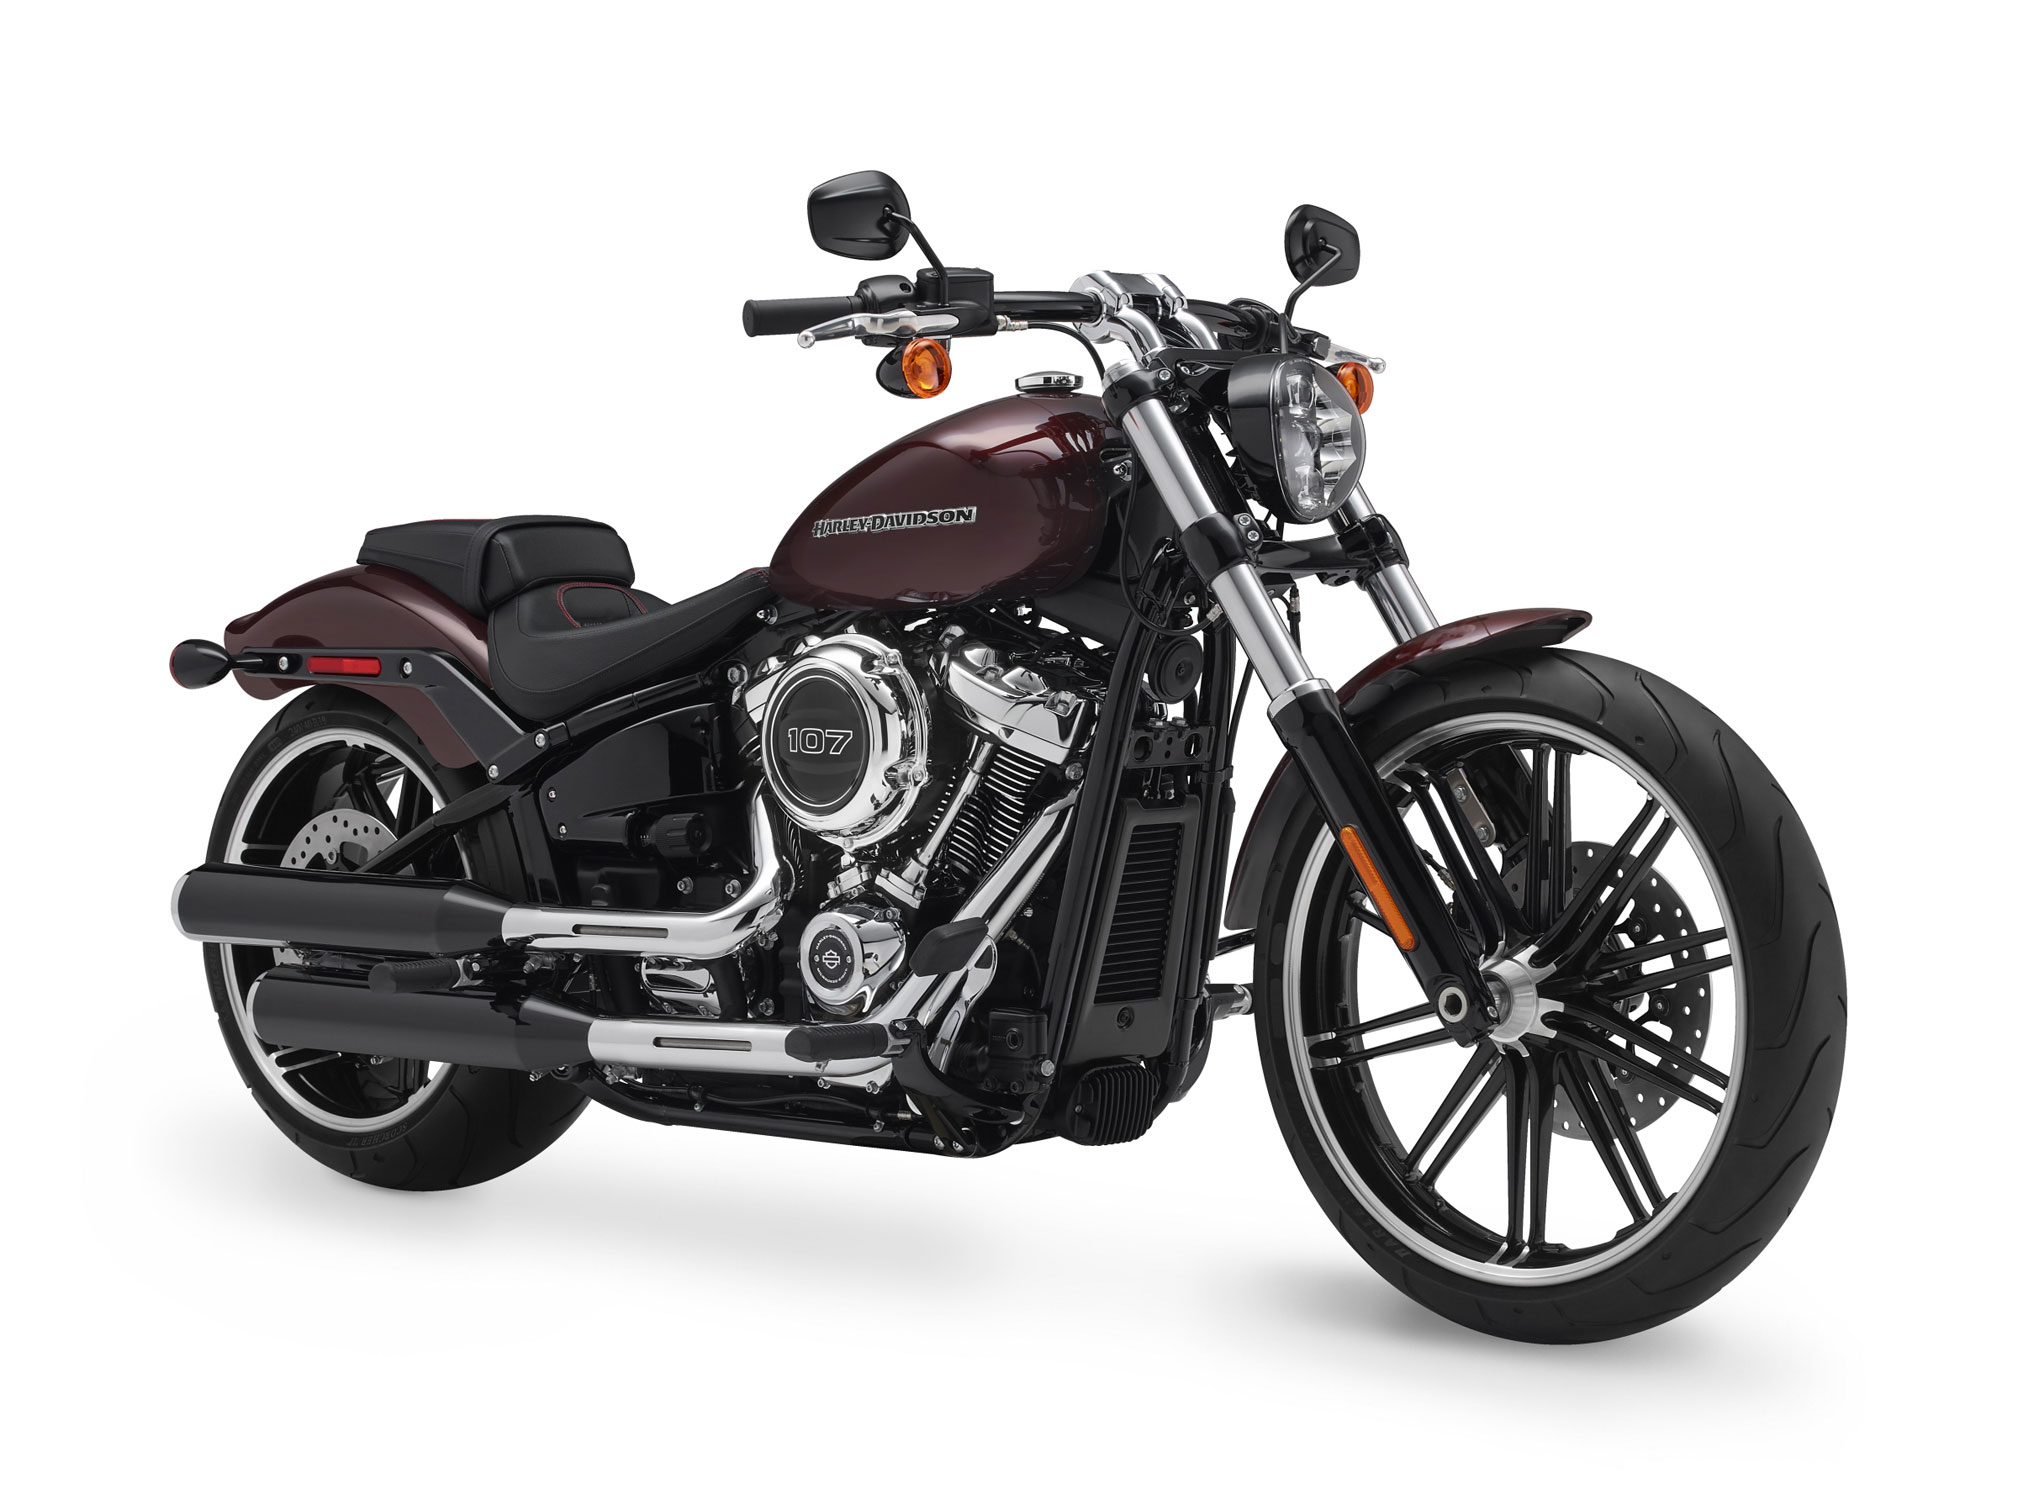 2018 harley davidson breakout review totalmotorcycle. Black Bedroom Furniture Sets. Home Design Ideas